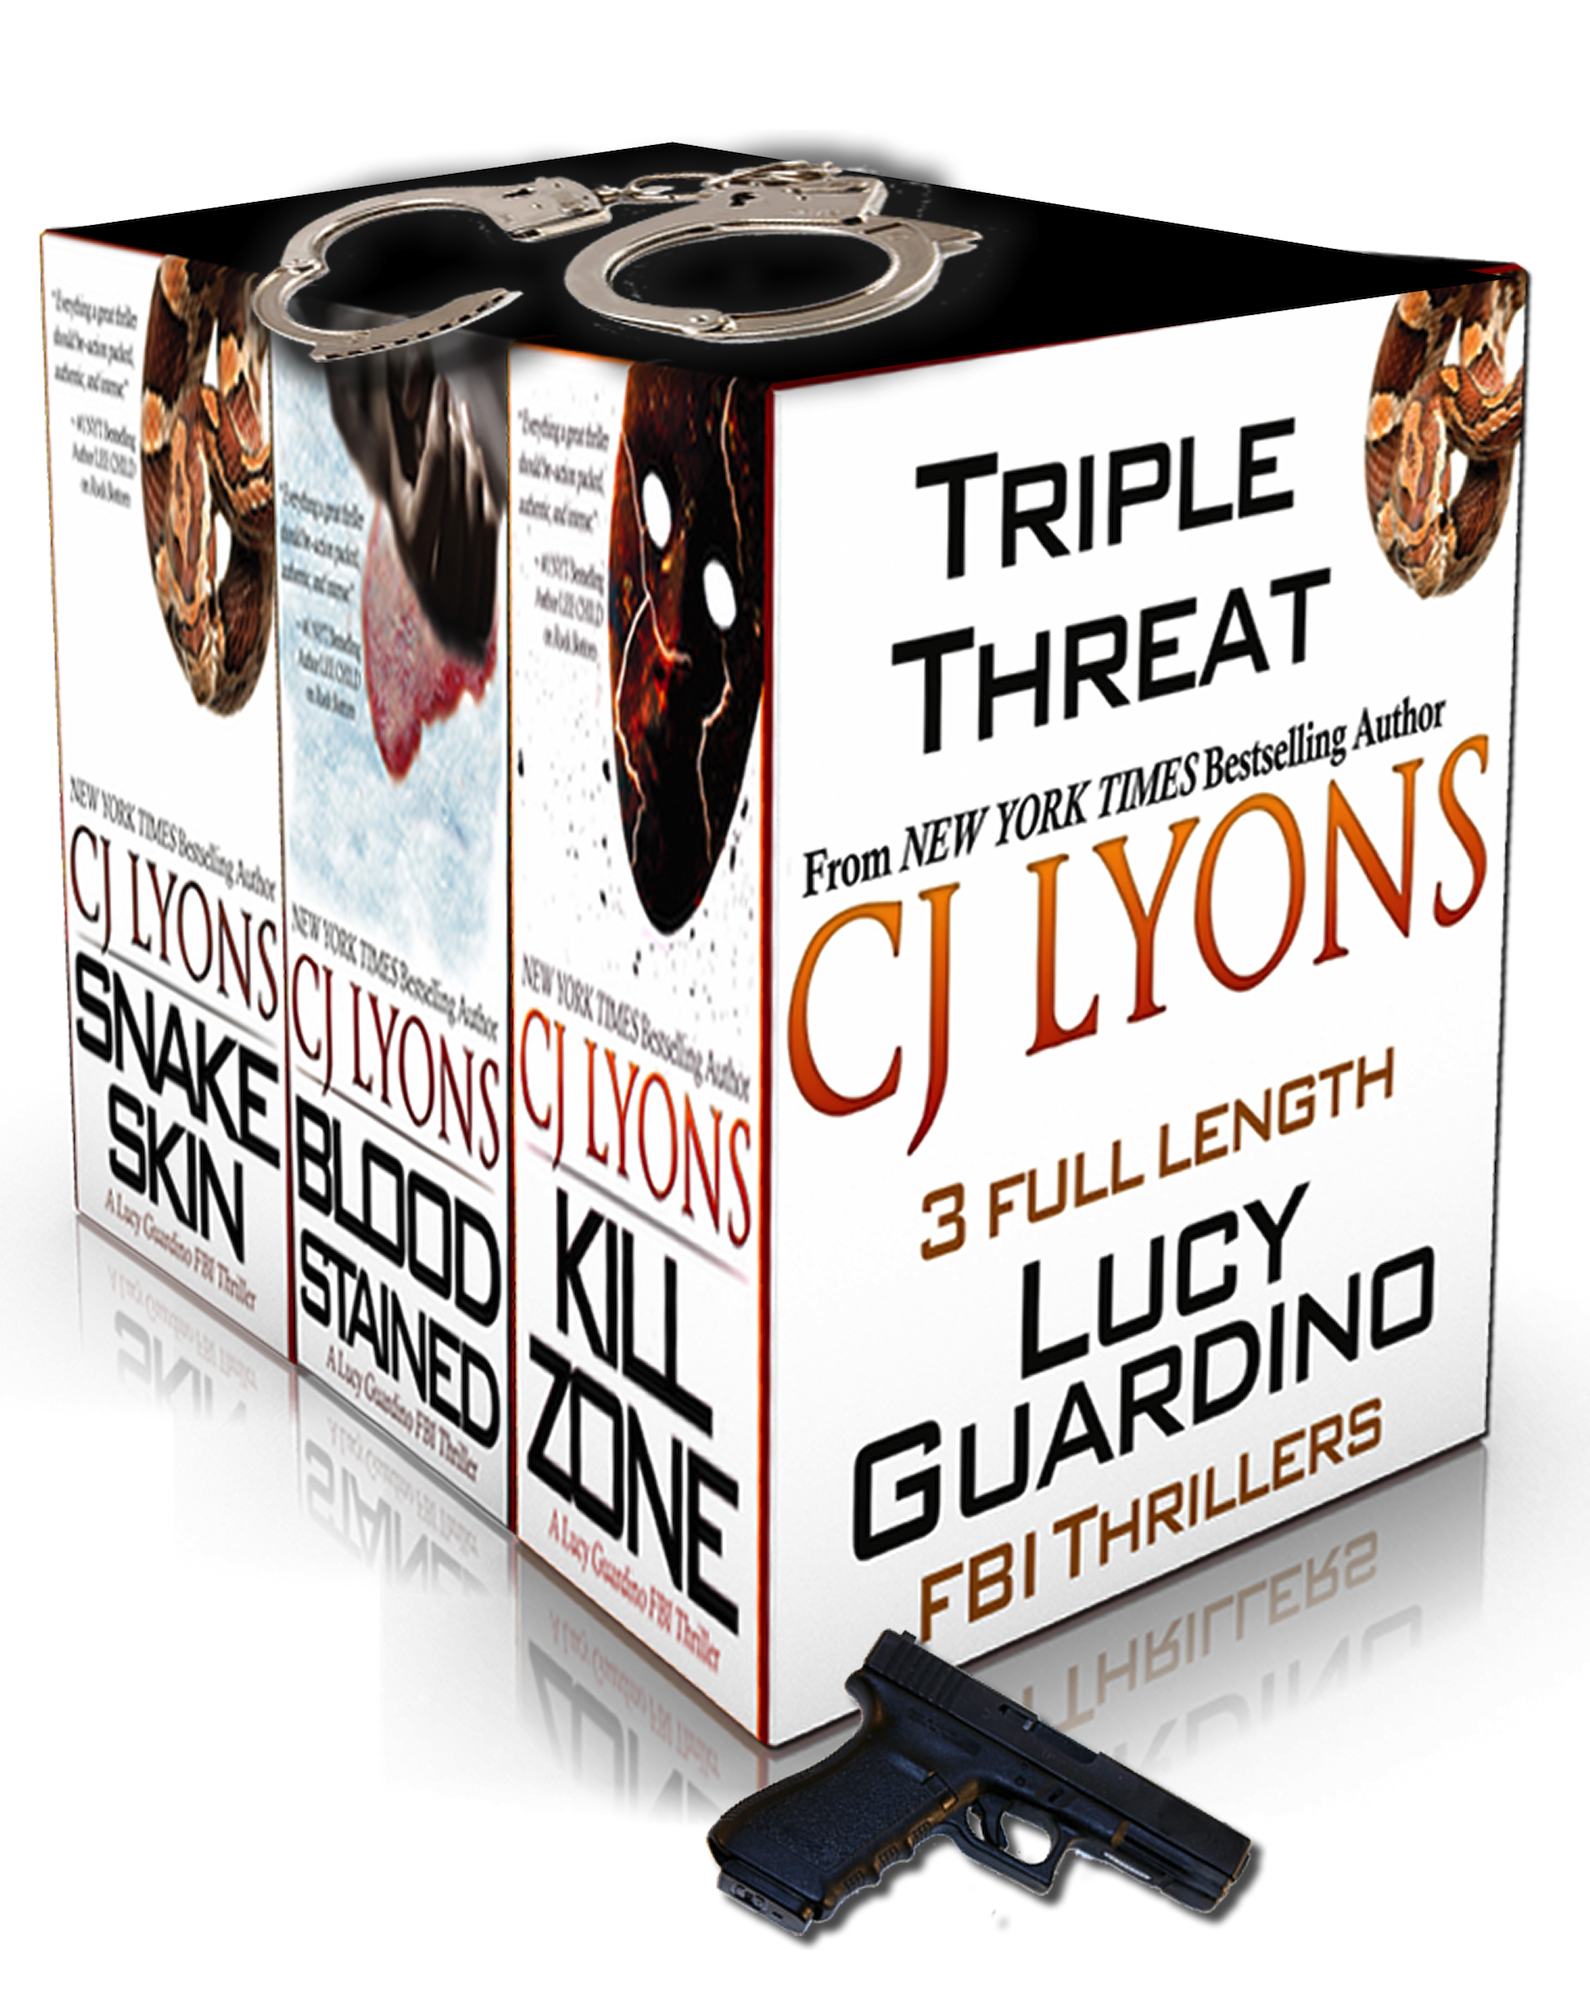 TRIPLE THREAT: 3 complete Lucy Guardino FBI Thrillers